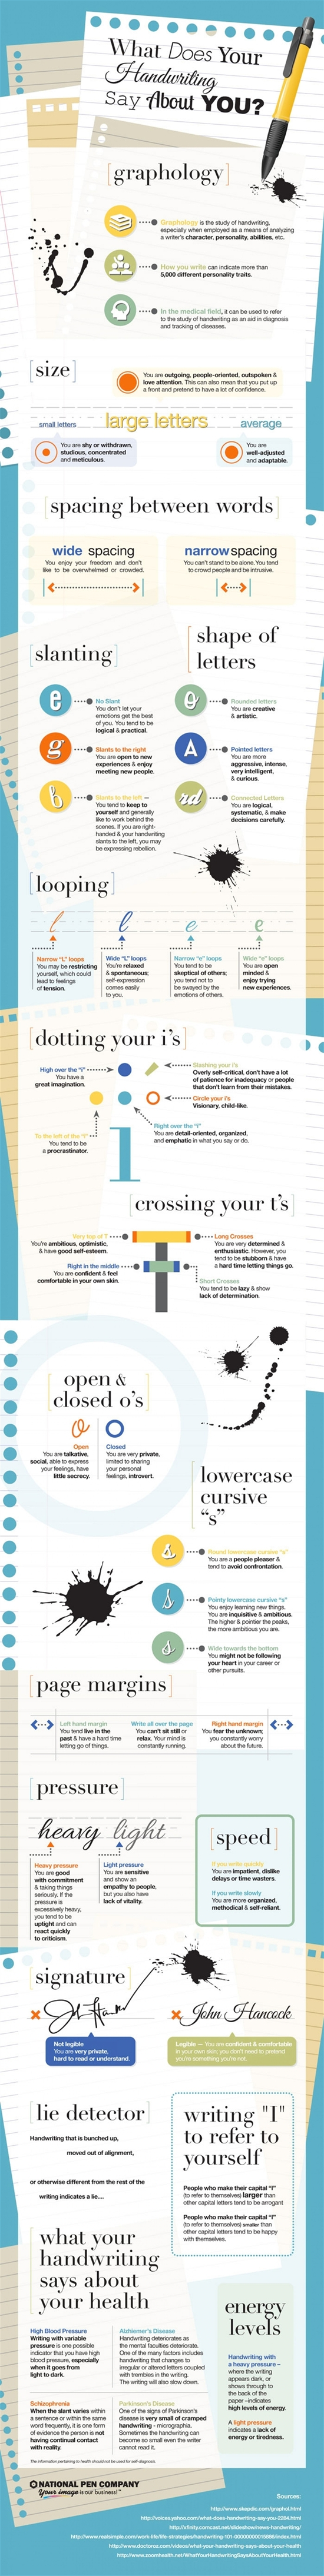 Graphology Infographic